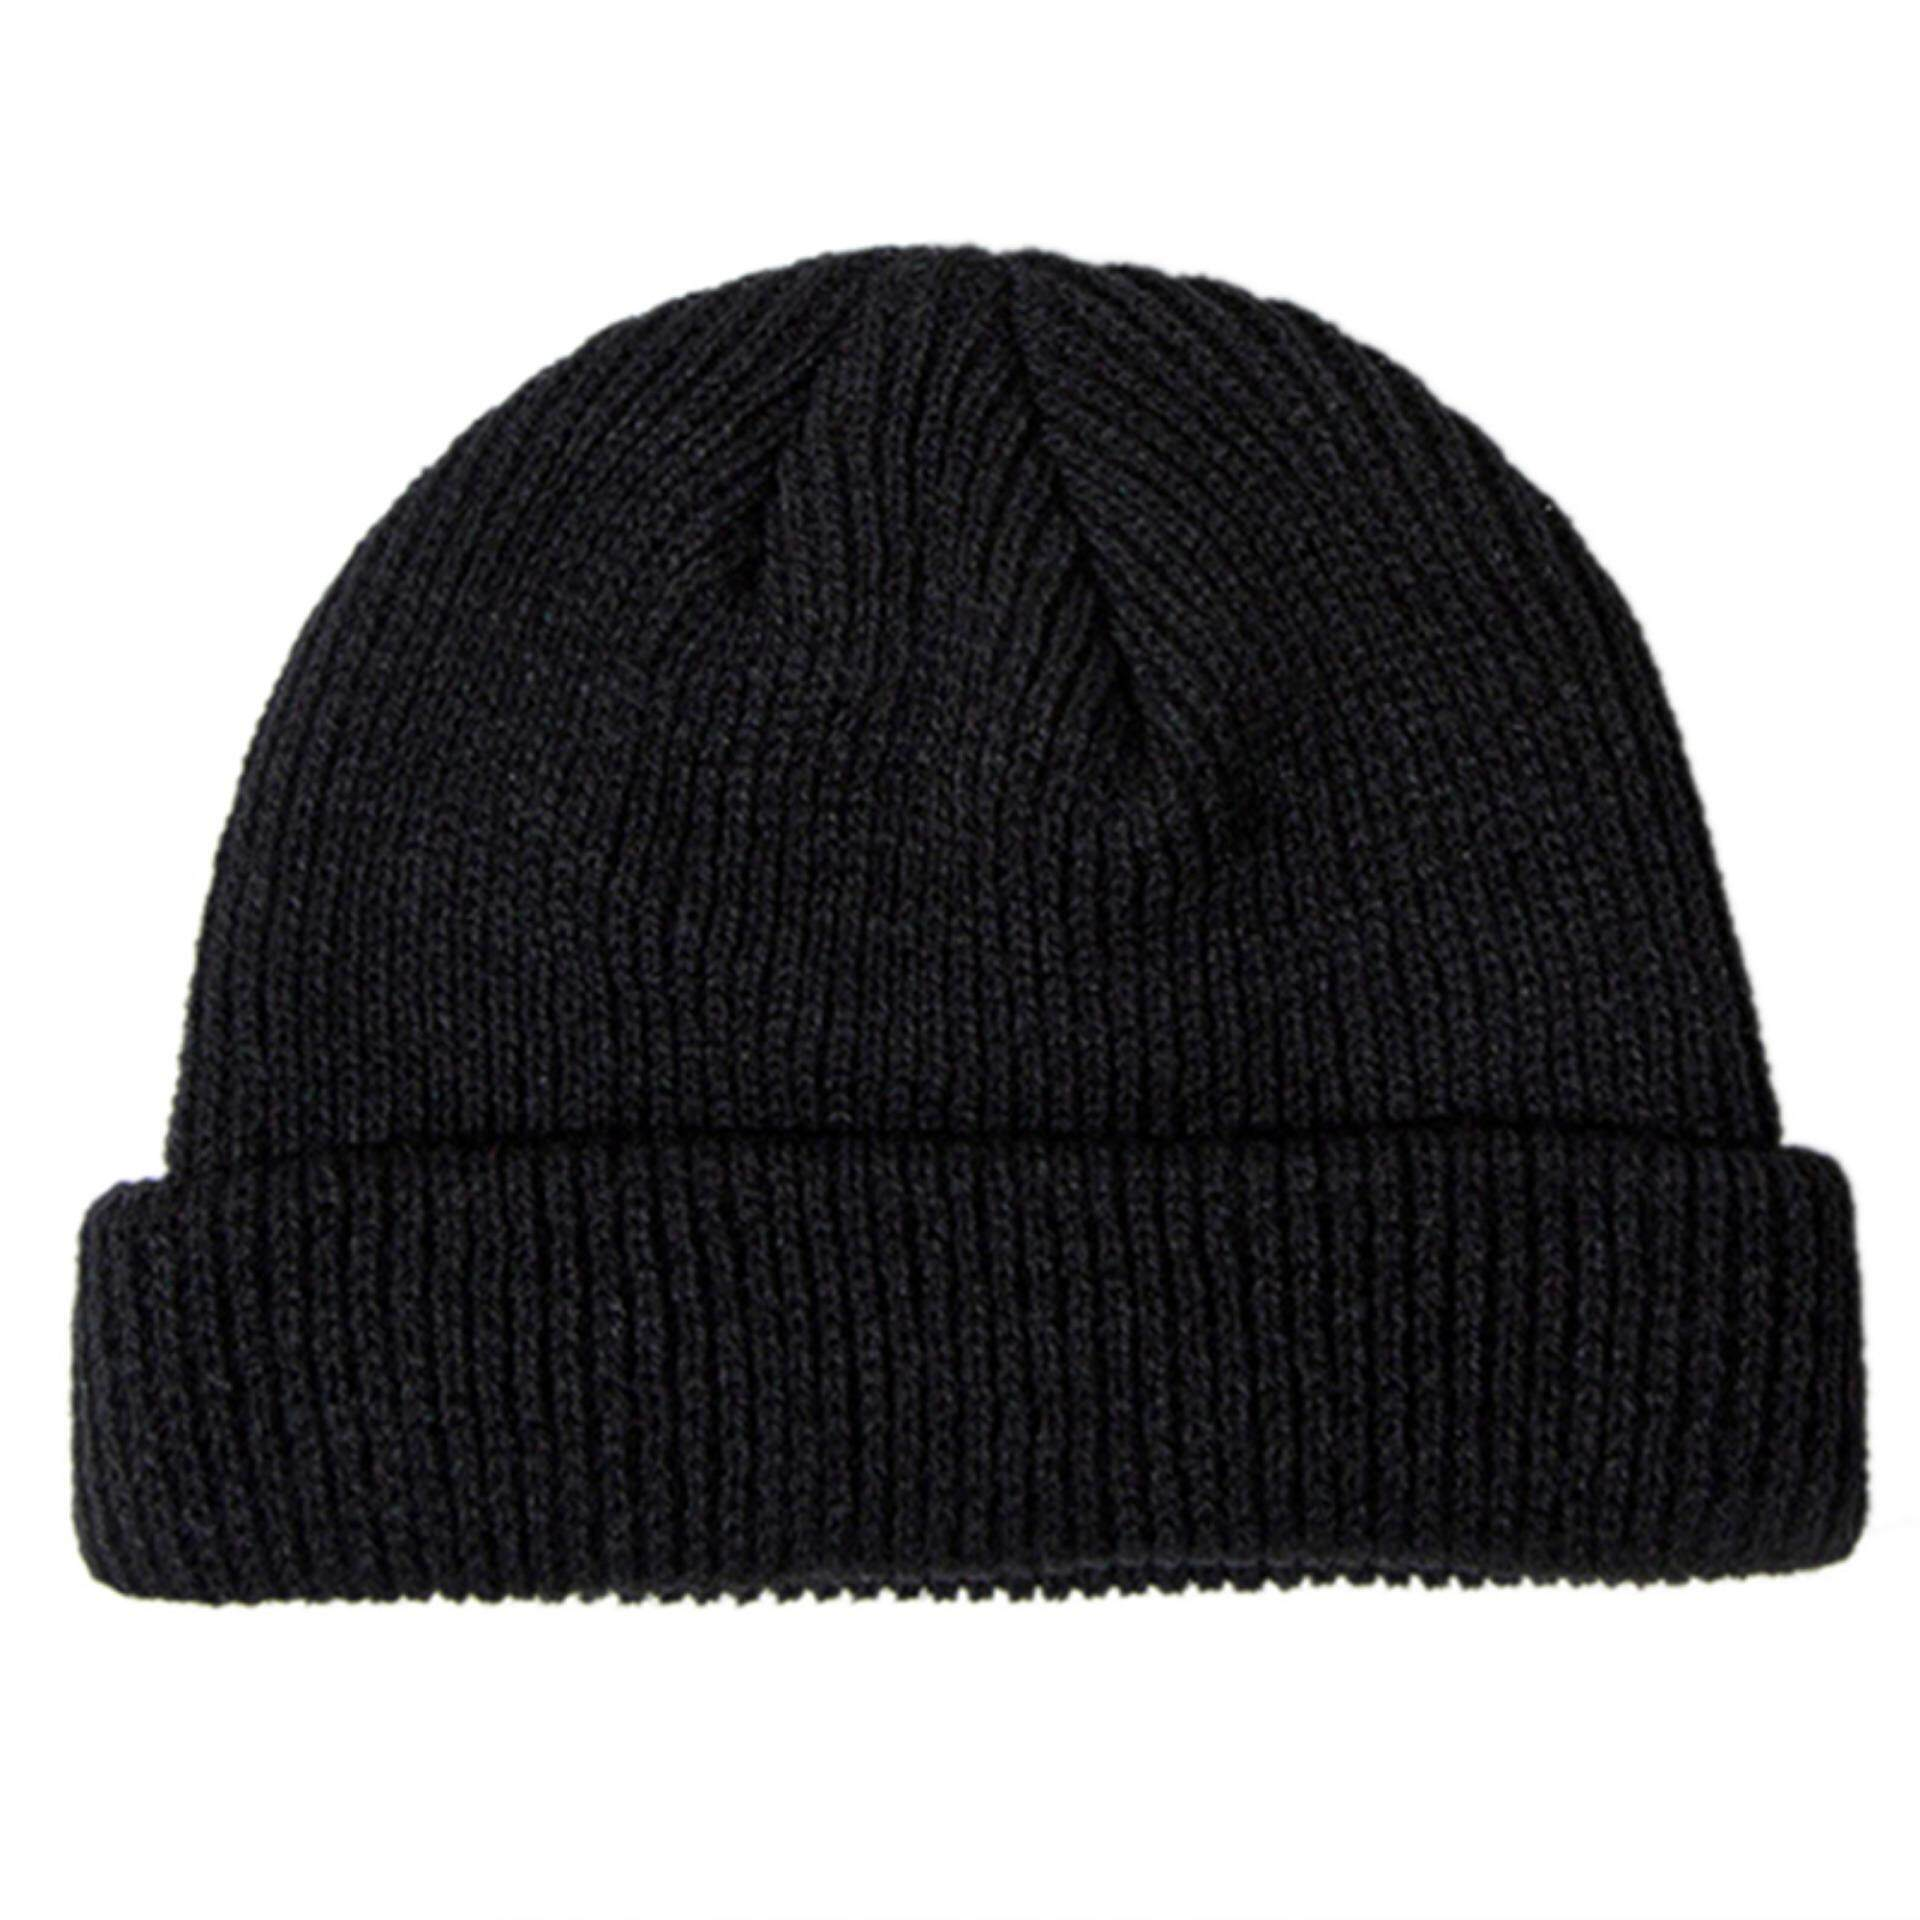 Unisex Men Women Beanie Hat Warm Ribbed Winter Turn Ski Fisherman Hat  Fashion 7c2a485e8dc1